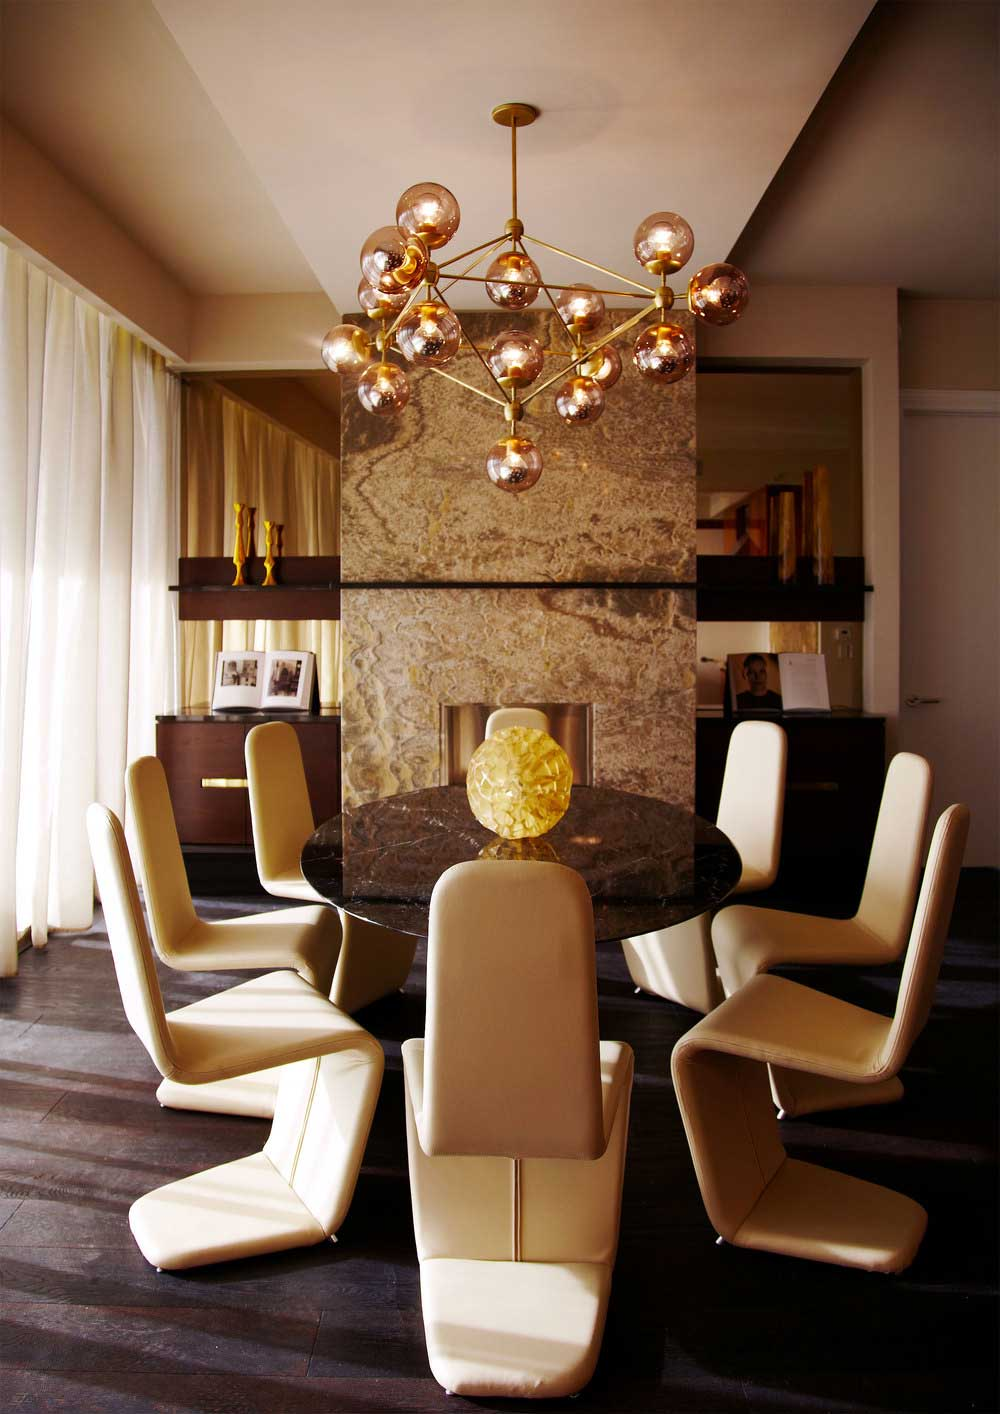 modern dining room with pendant hanging chandeliers